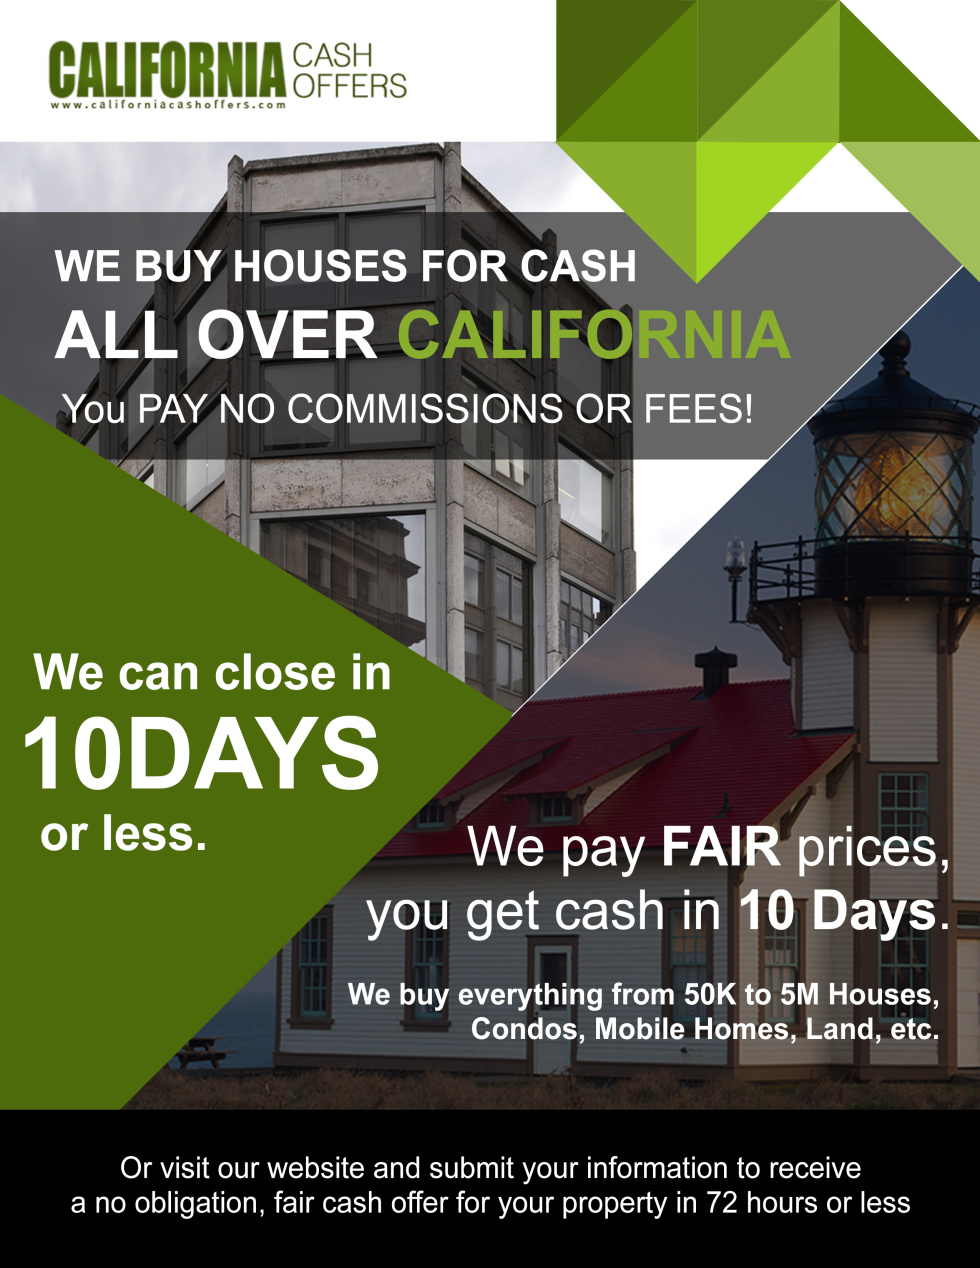 California Cash Offers website